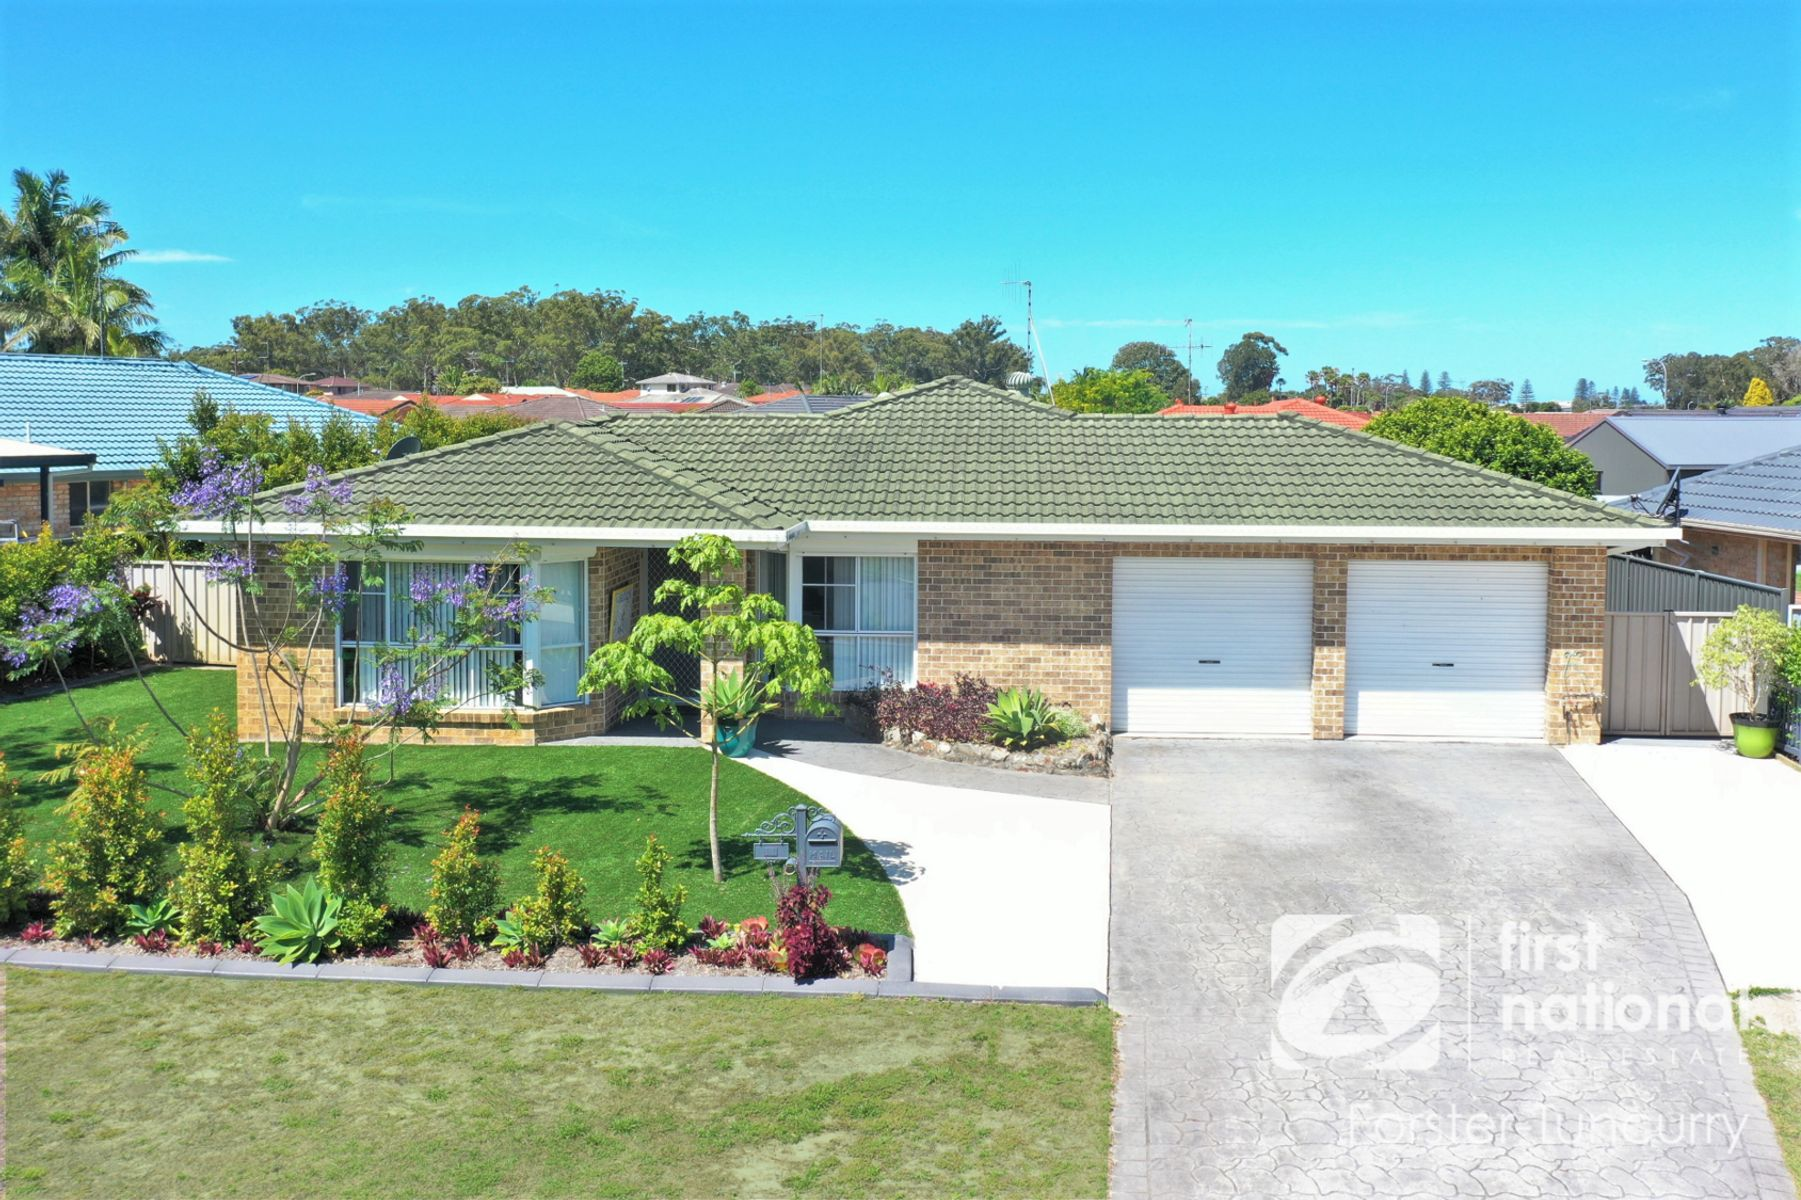 11 Oasis Parade, Tuncurry, NSW 2428